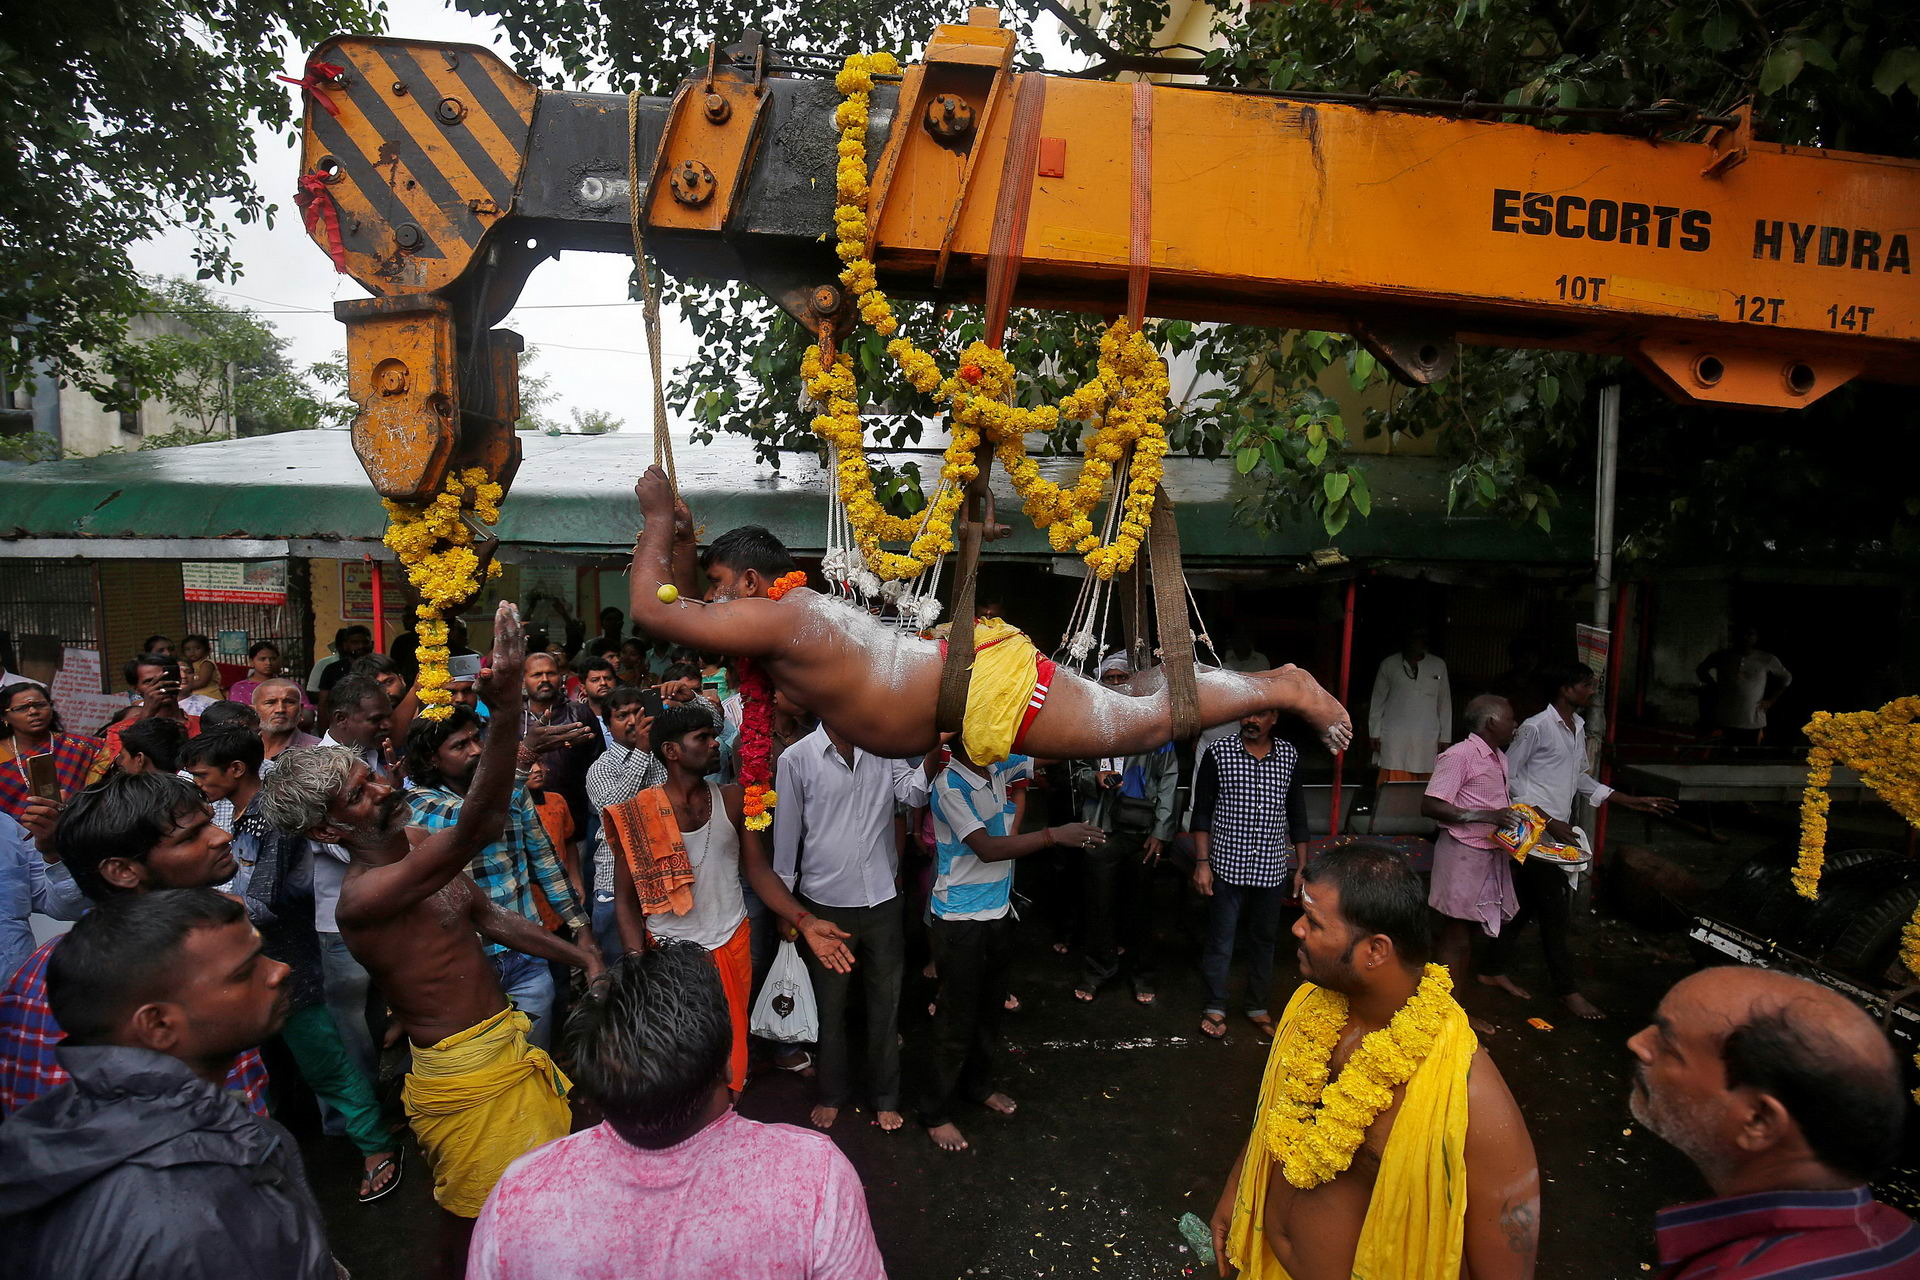 A Hindu devotee with his back and legs pierced with iron hooks suspends from a crane during an annual religious procession called Shitla Mata in Ahmedabad, India, July 23, 2017. (Photo by Amit Dave/Reuters)